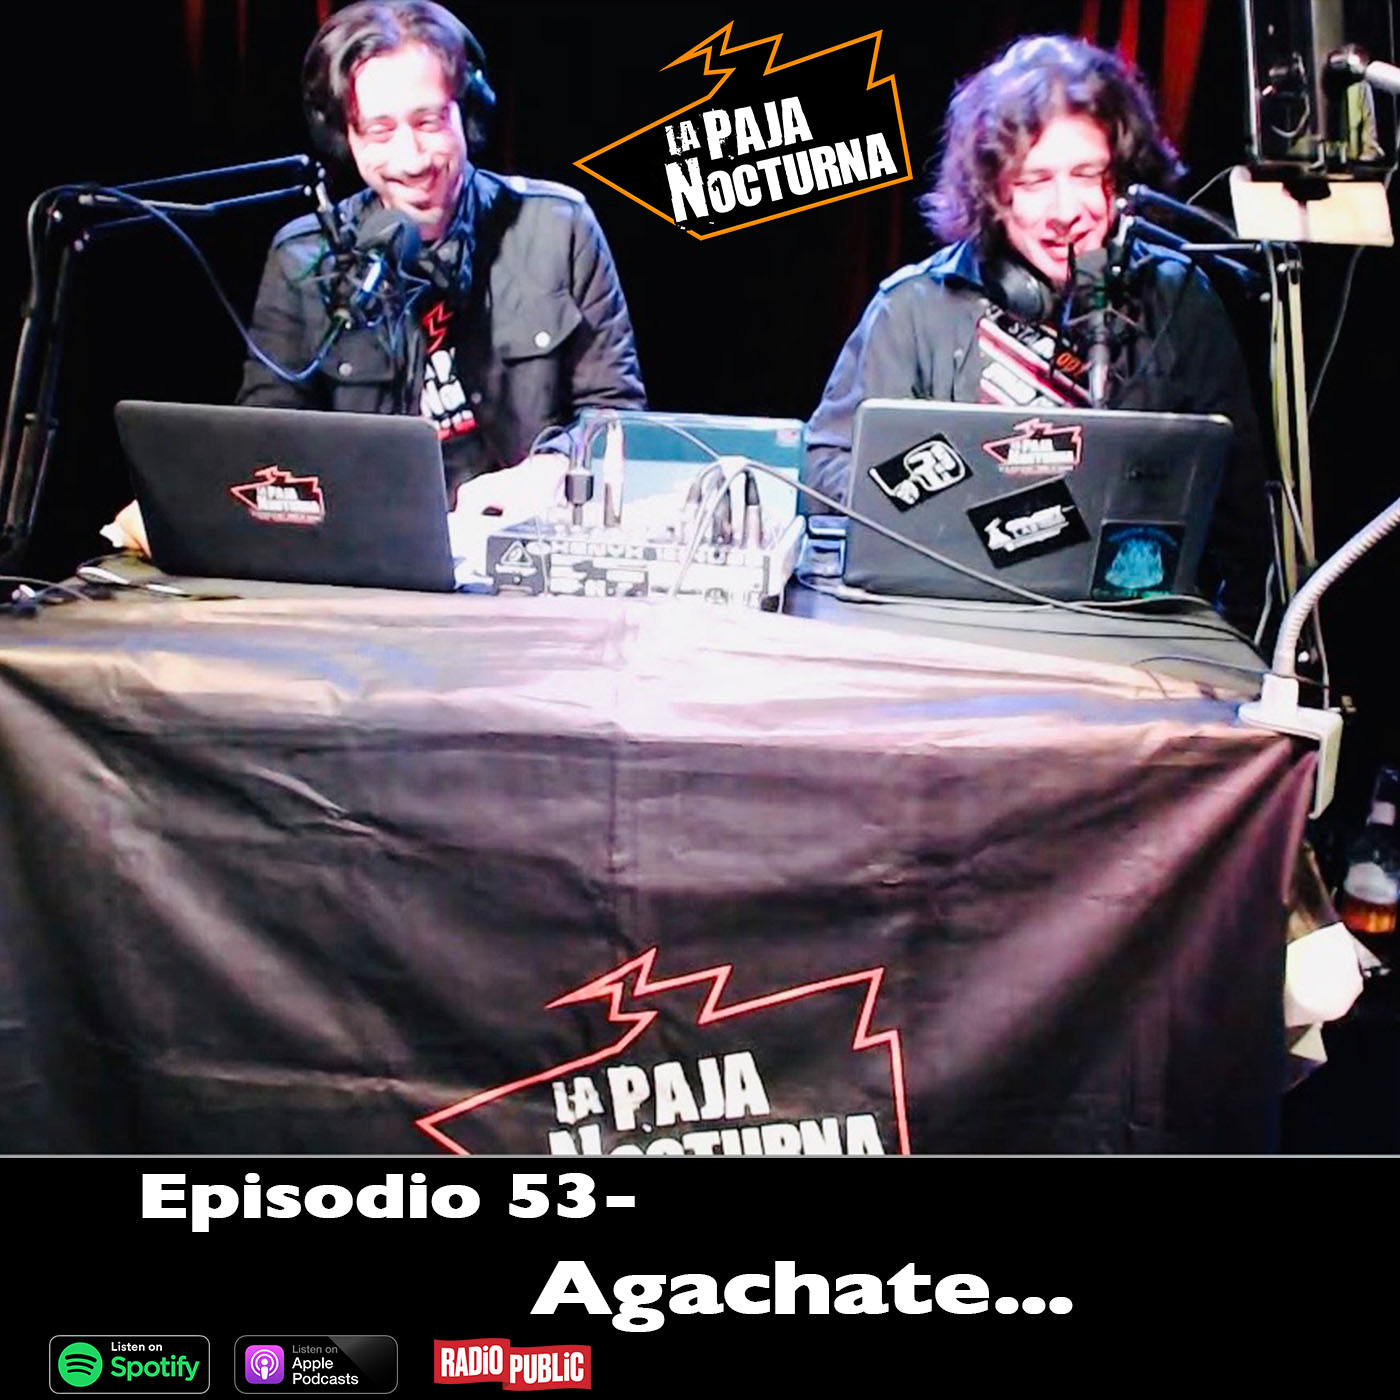 La paja nocturna podcast Episodio 53